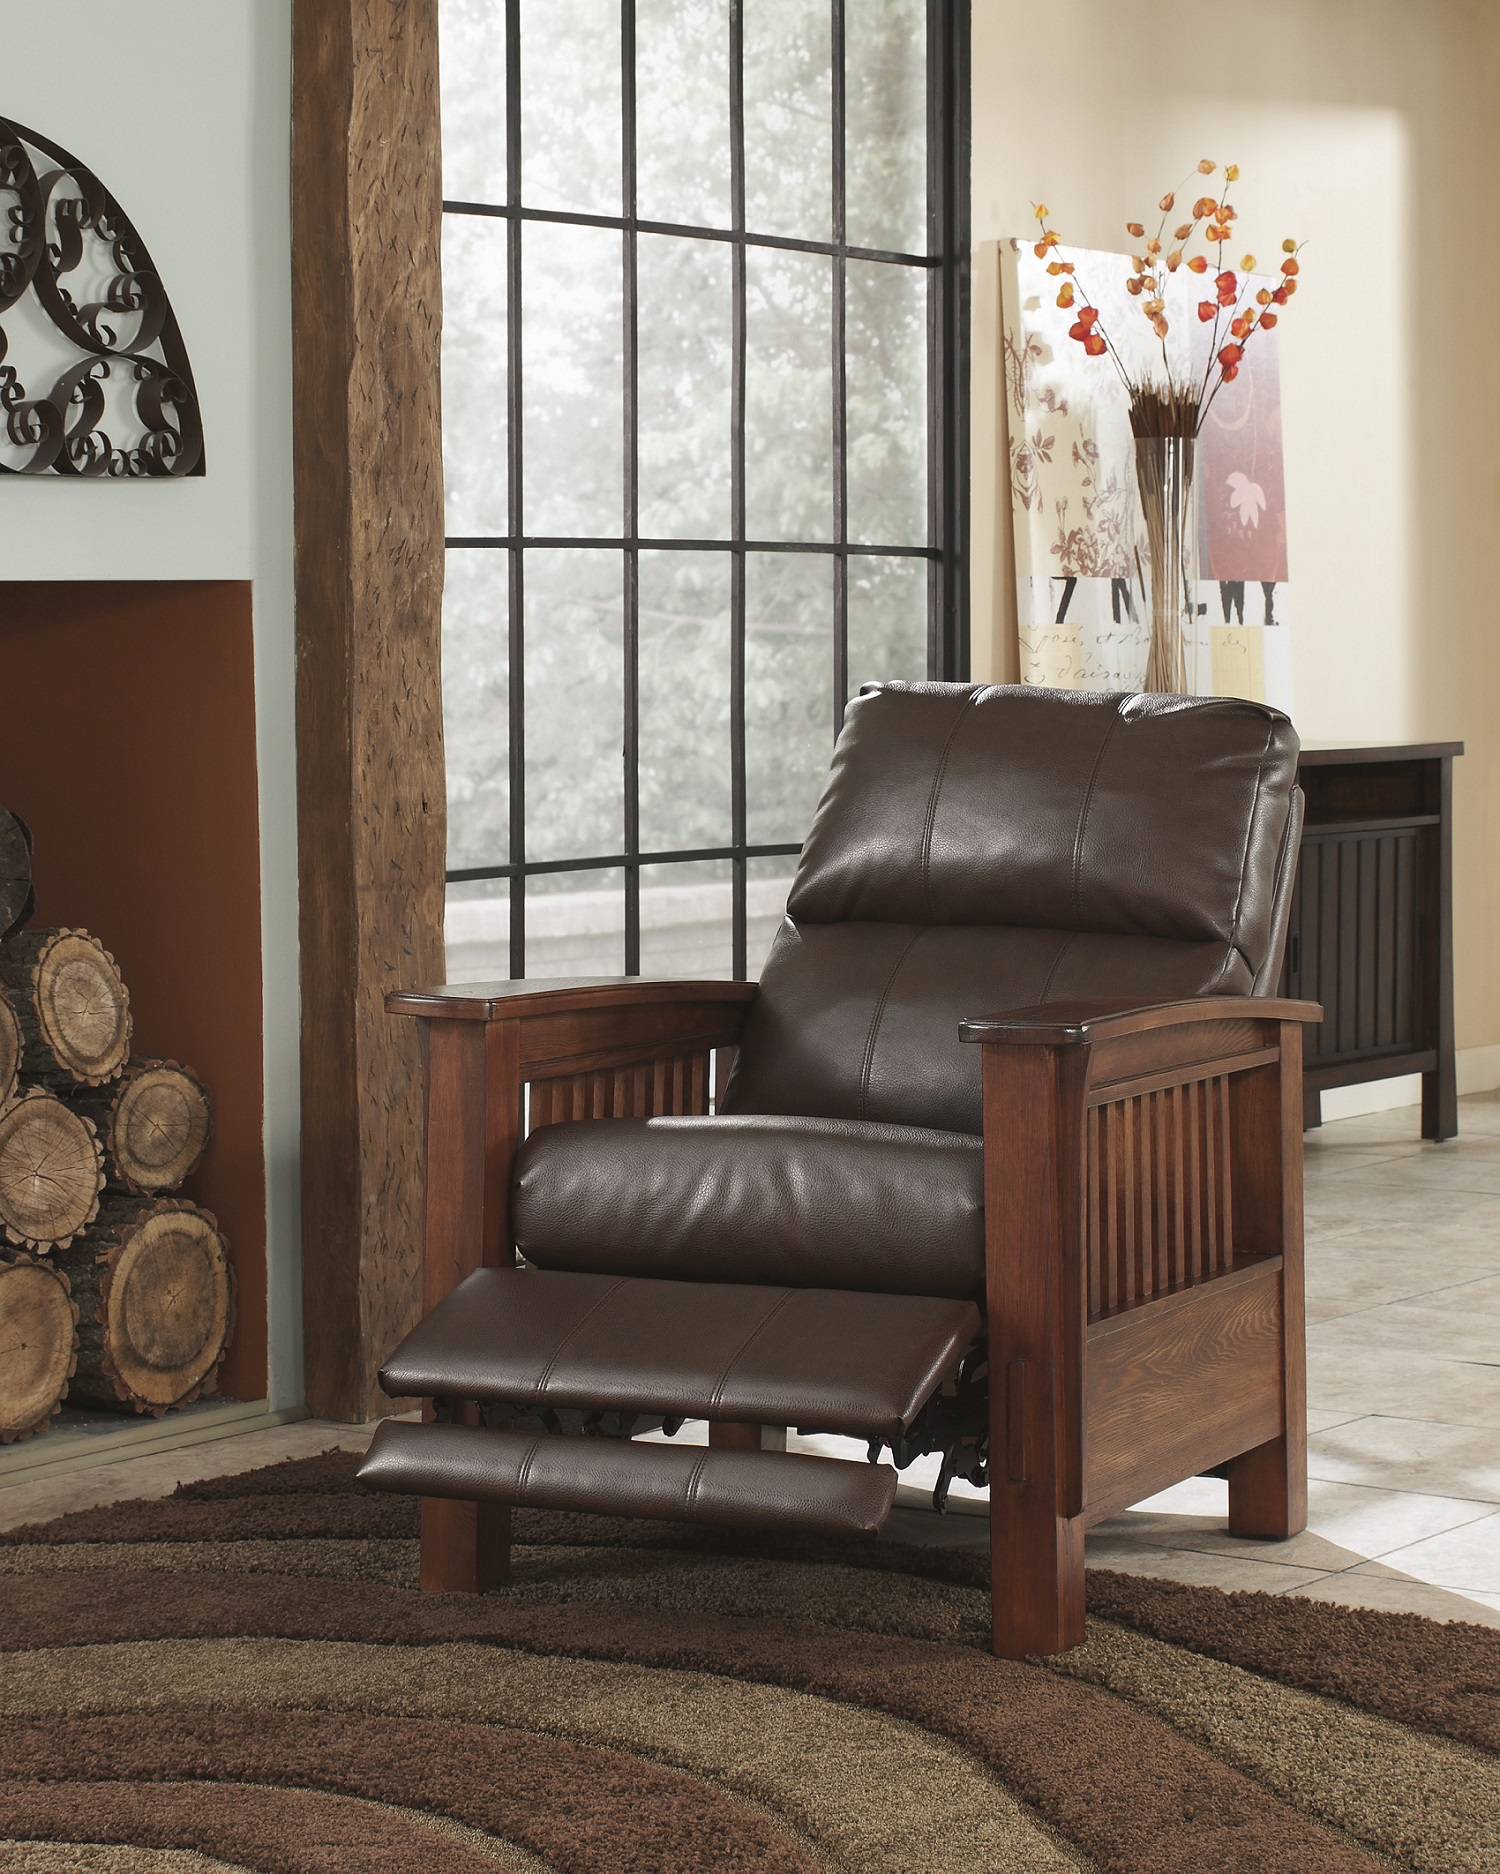 Santa Fe Bark High Leg Recliner Image